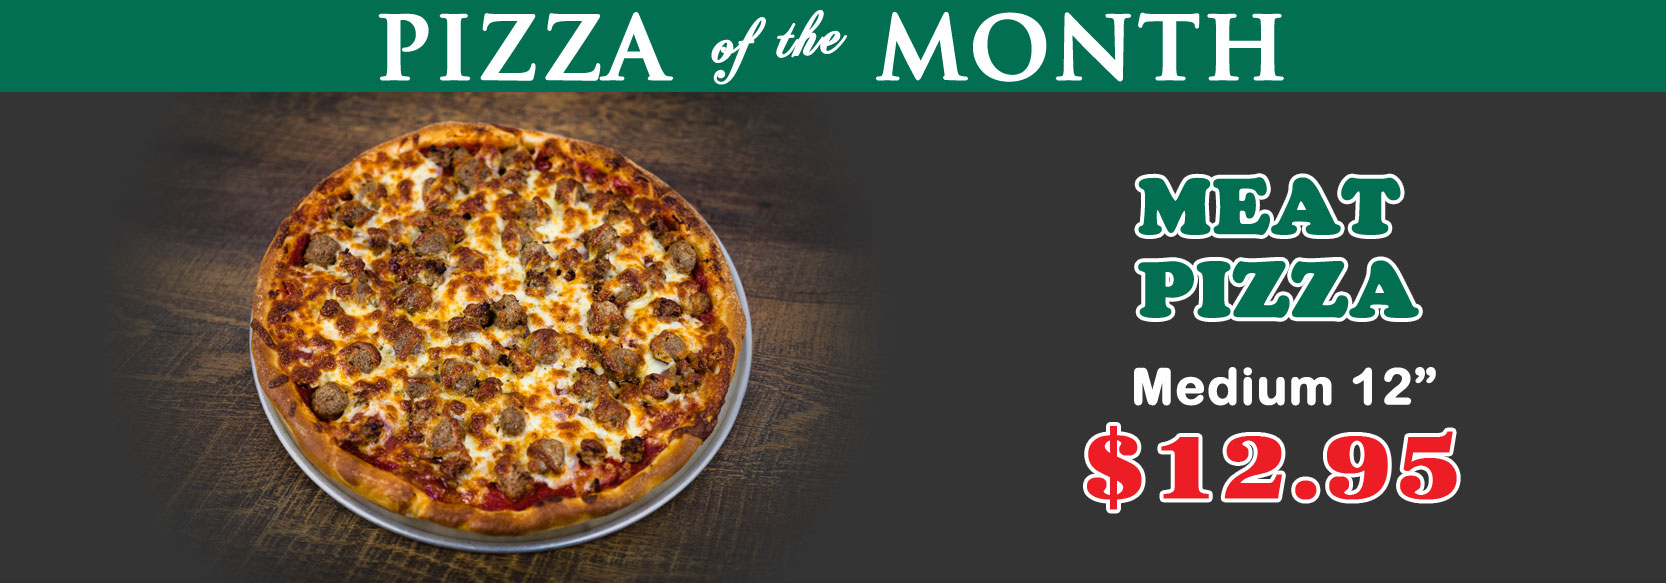 Januray 2019 Pizza of the Month - Meat Pizza